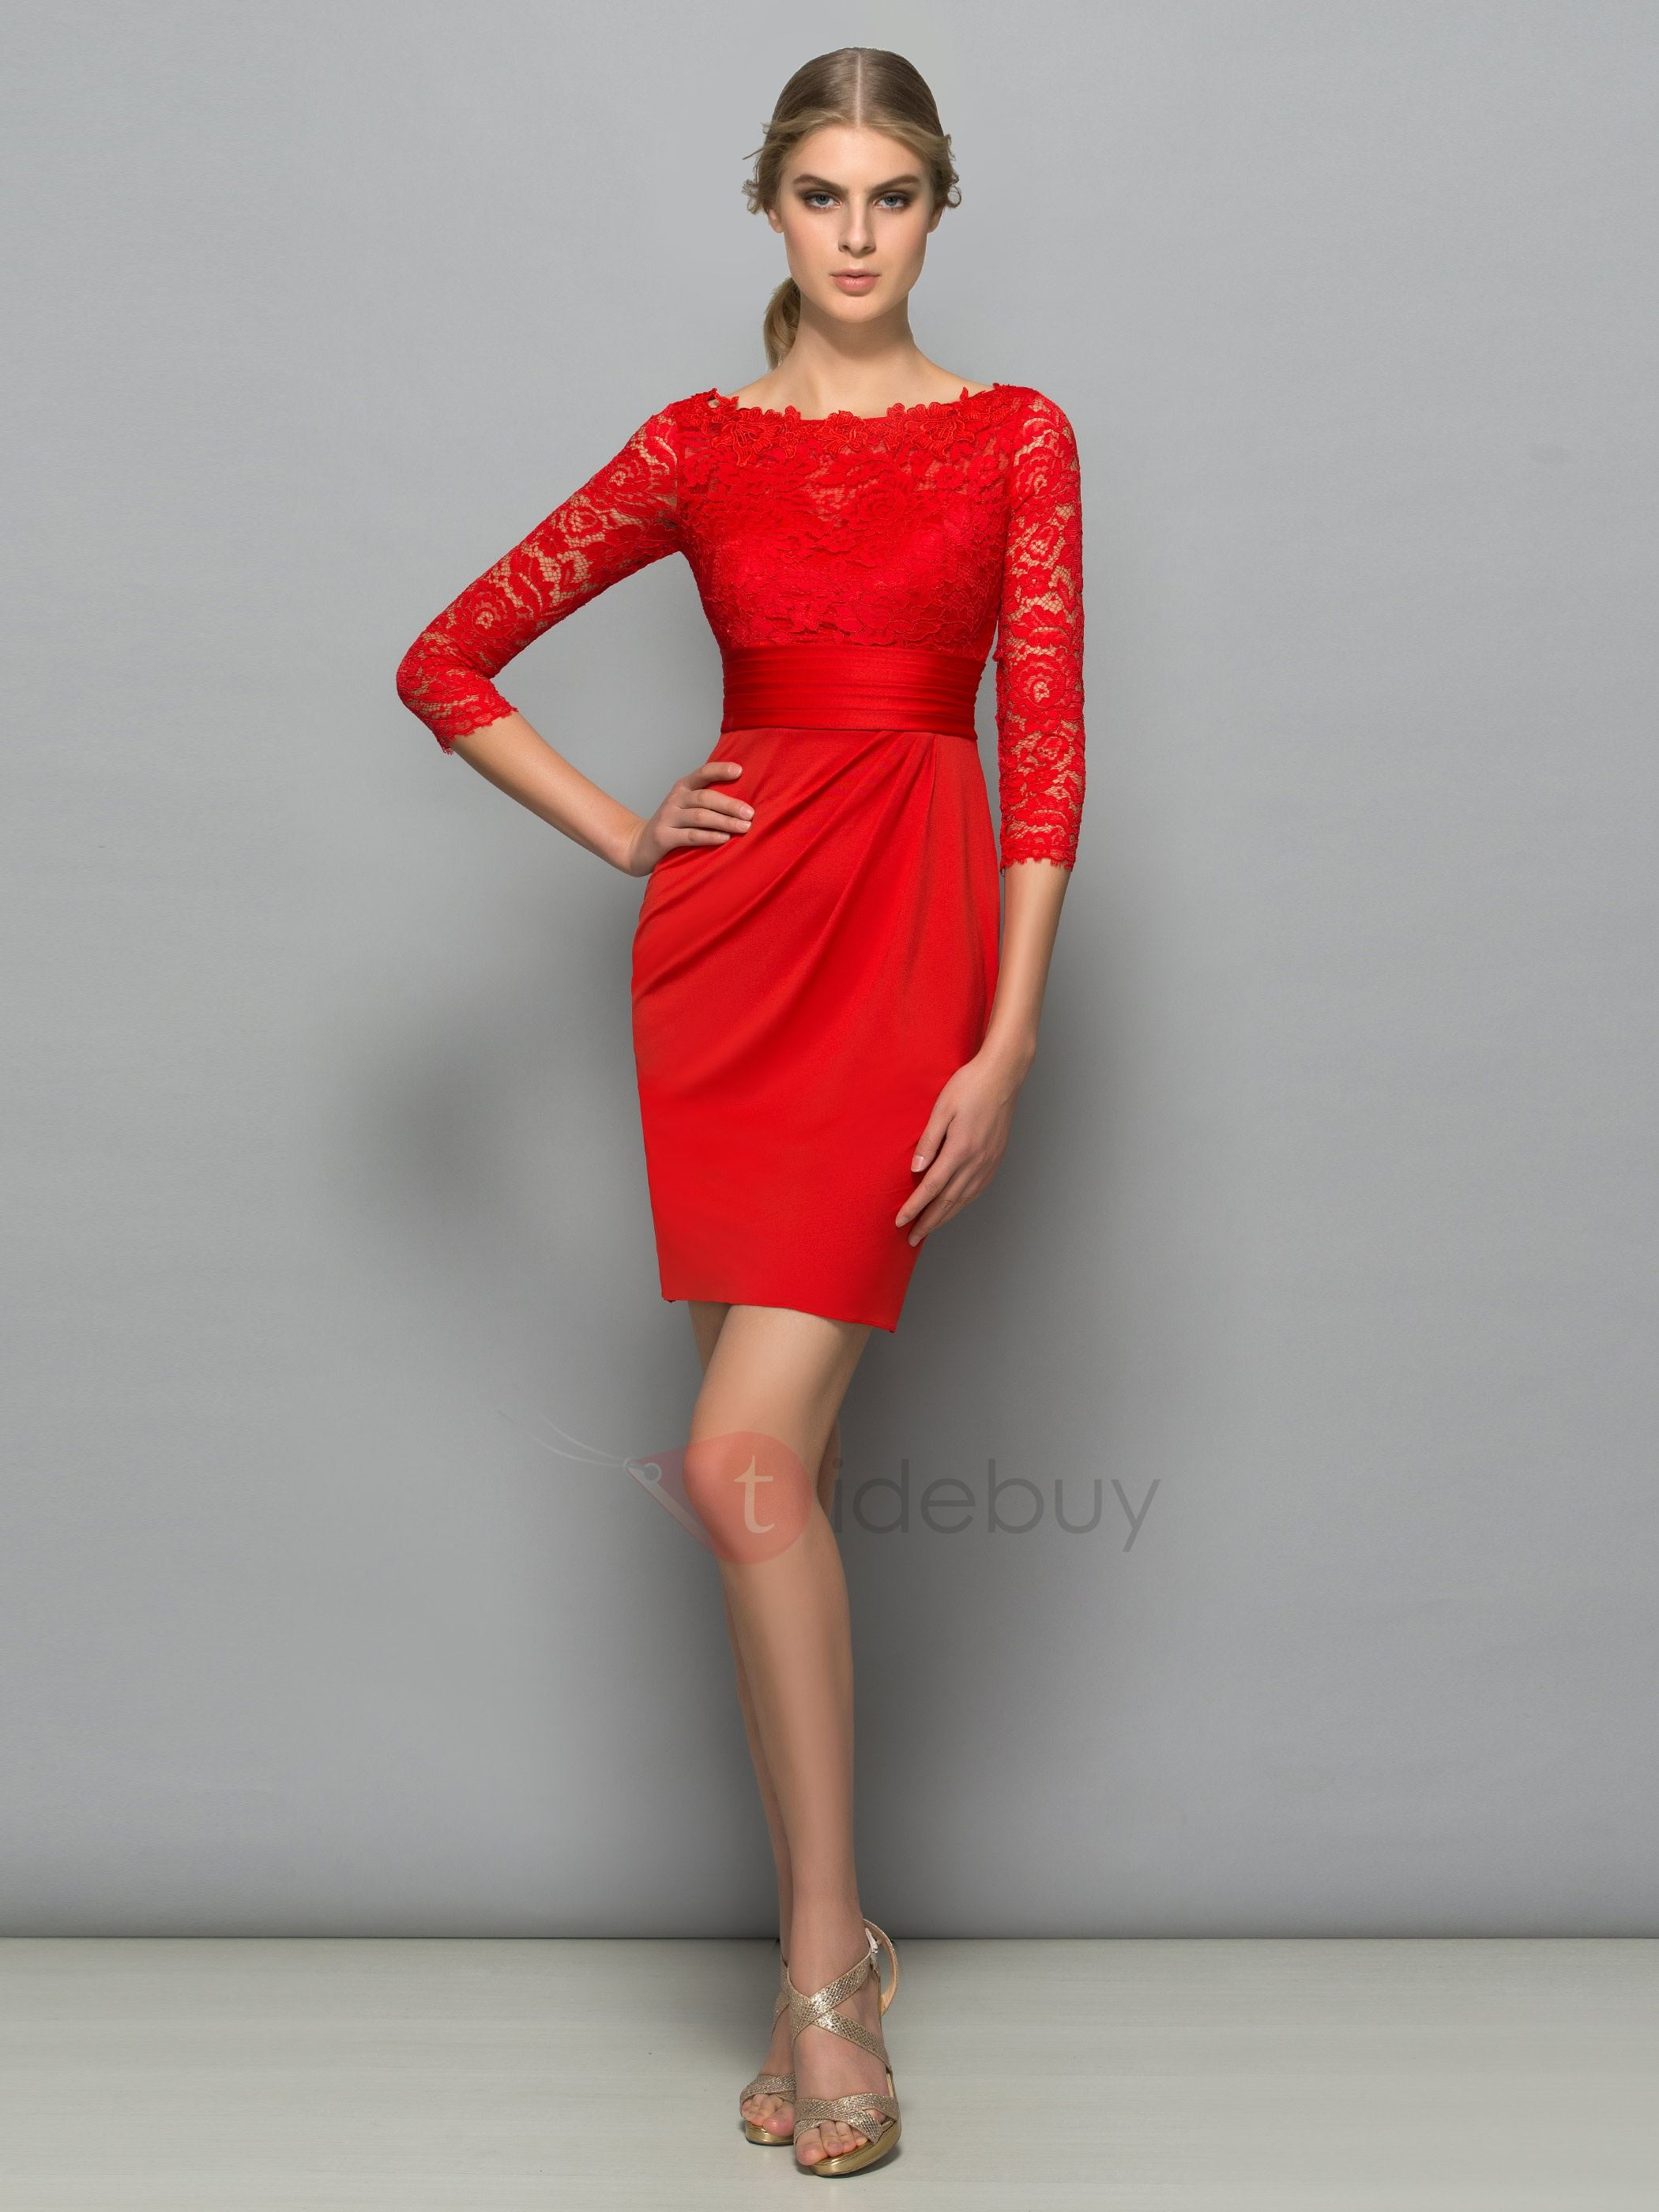 Classy Bateau Neck 3 4 Length Sleeve Red Lace Cocktail